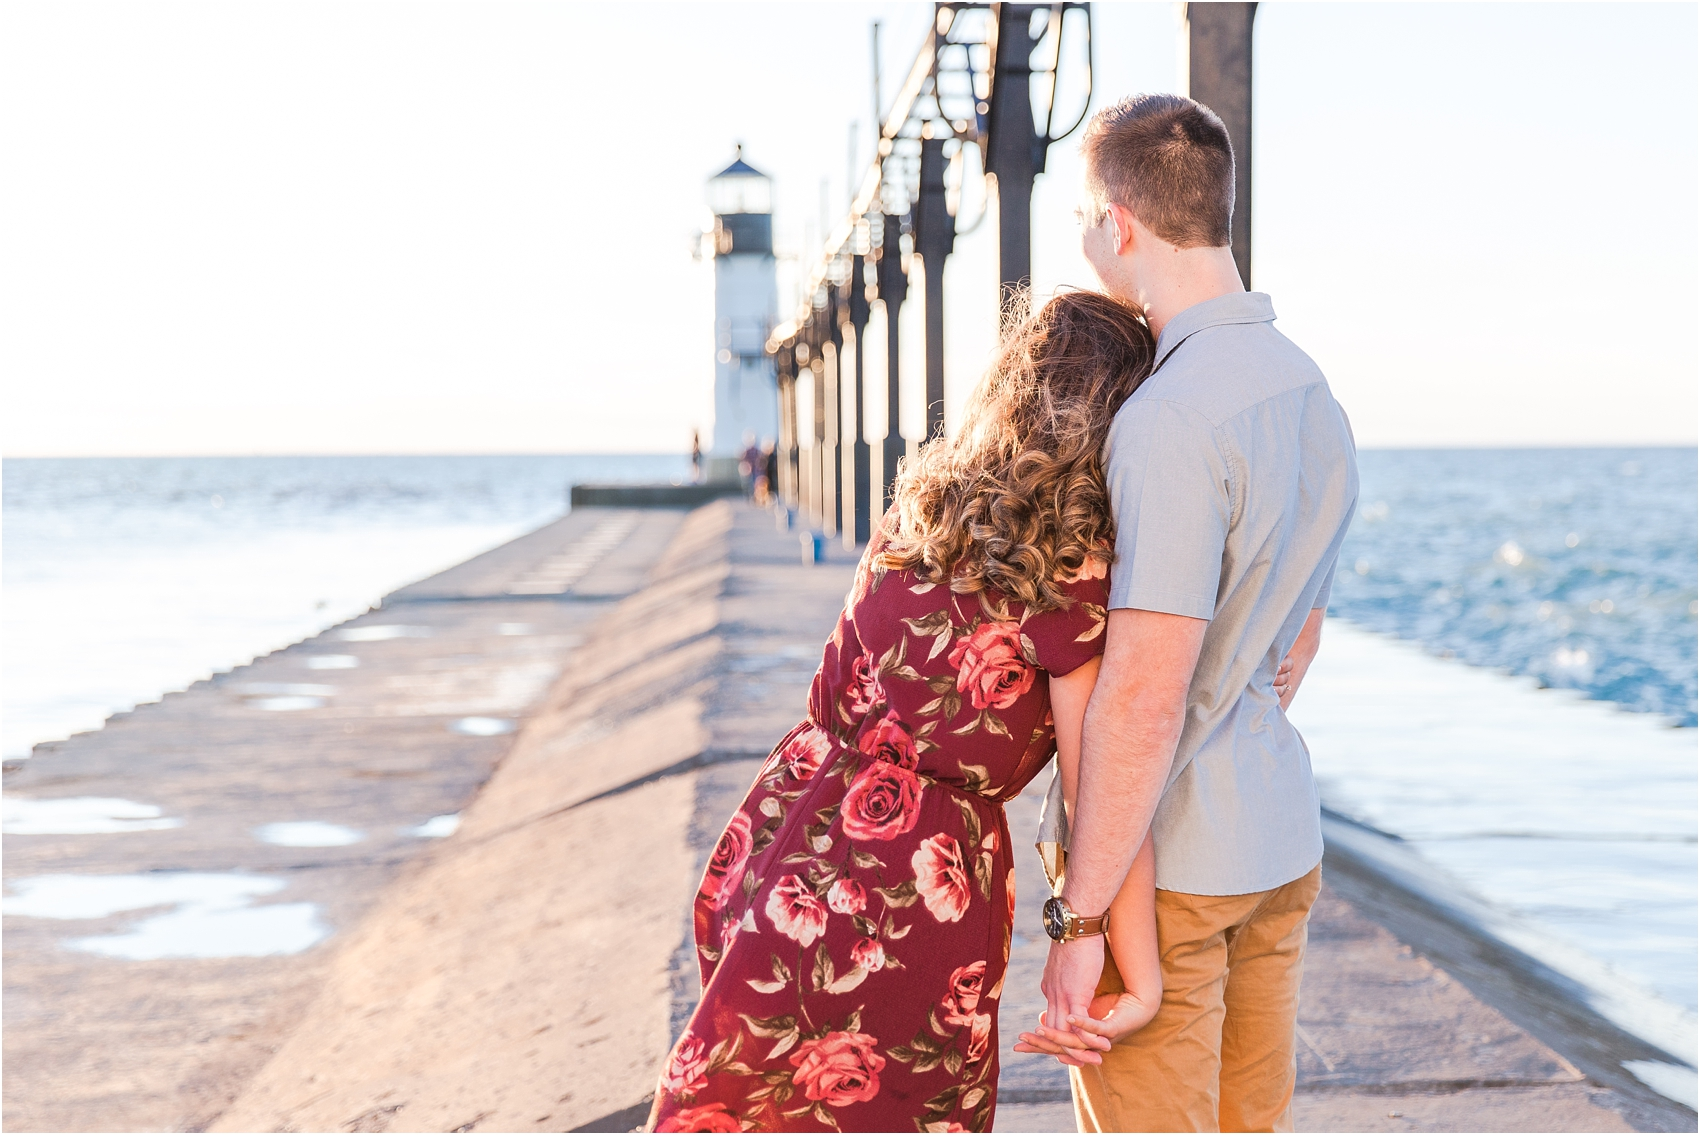 candid-end-of-summer-sunset-engagement-photos-at-silver-beach-in-st-joseph-mi-by-courtney-carolyn-photography_0027.jpg